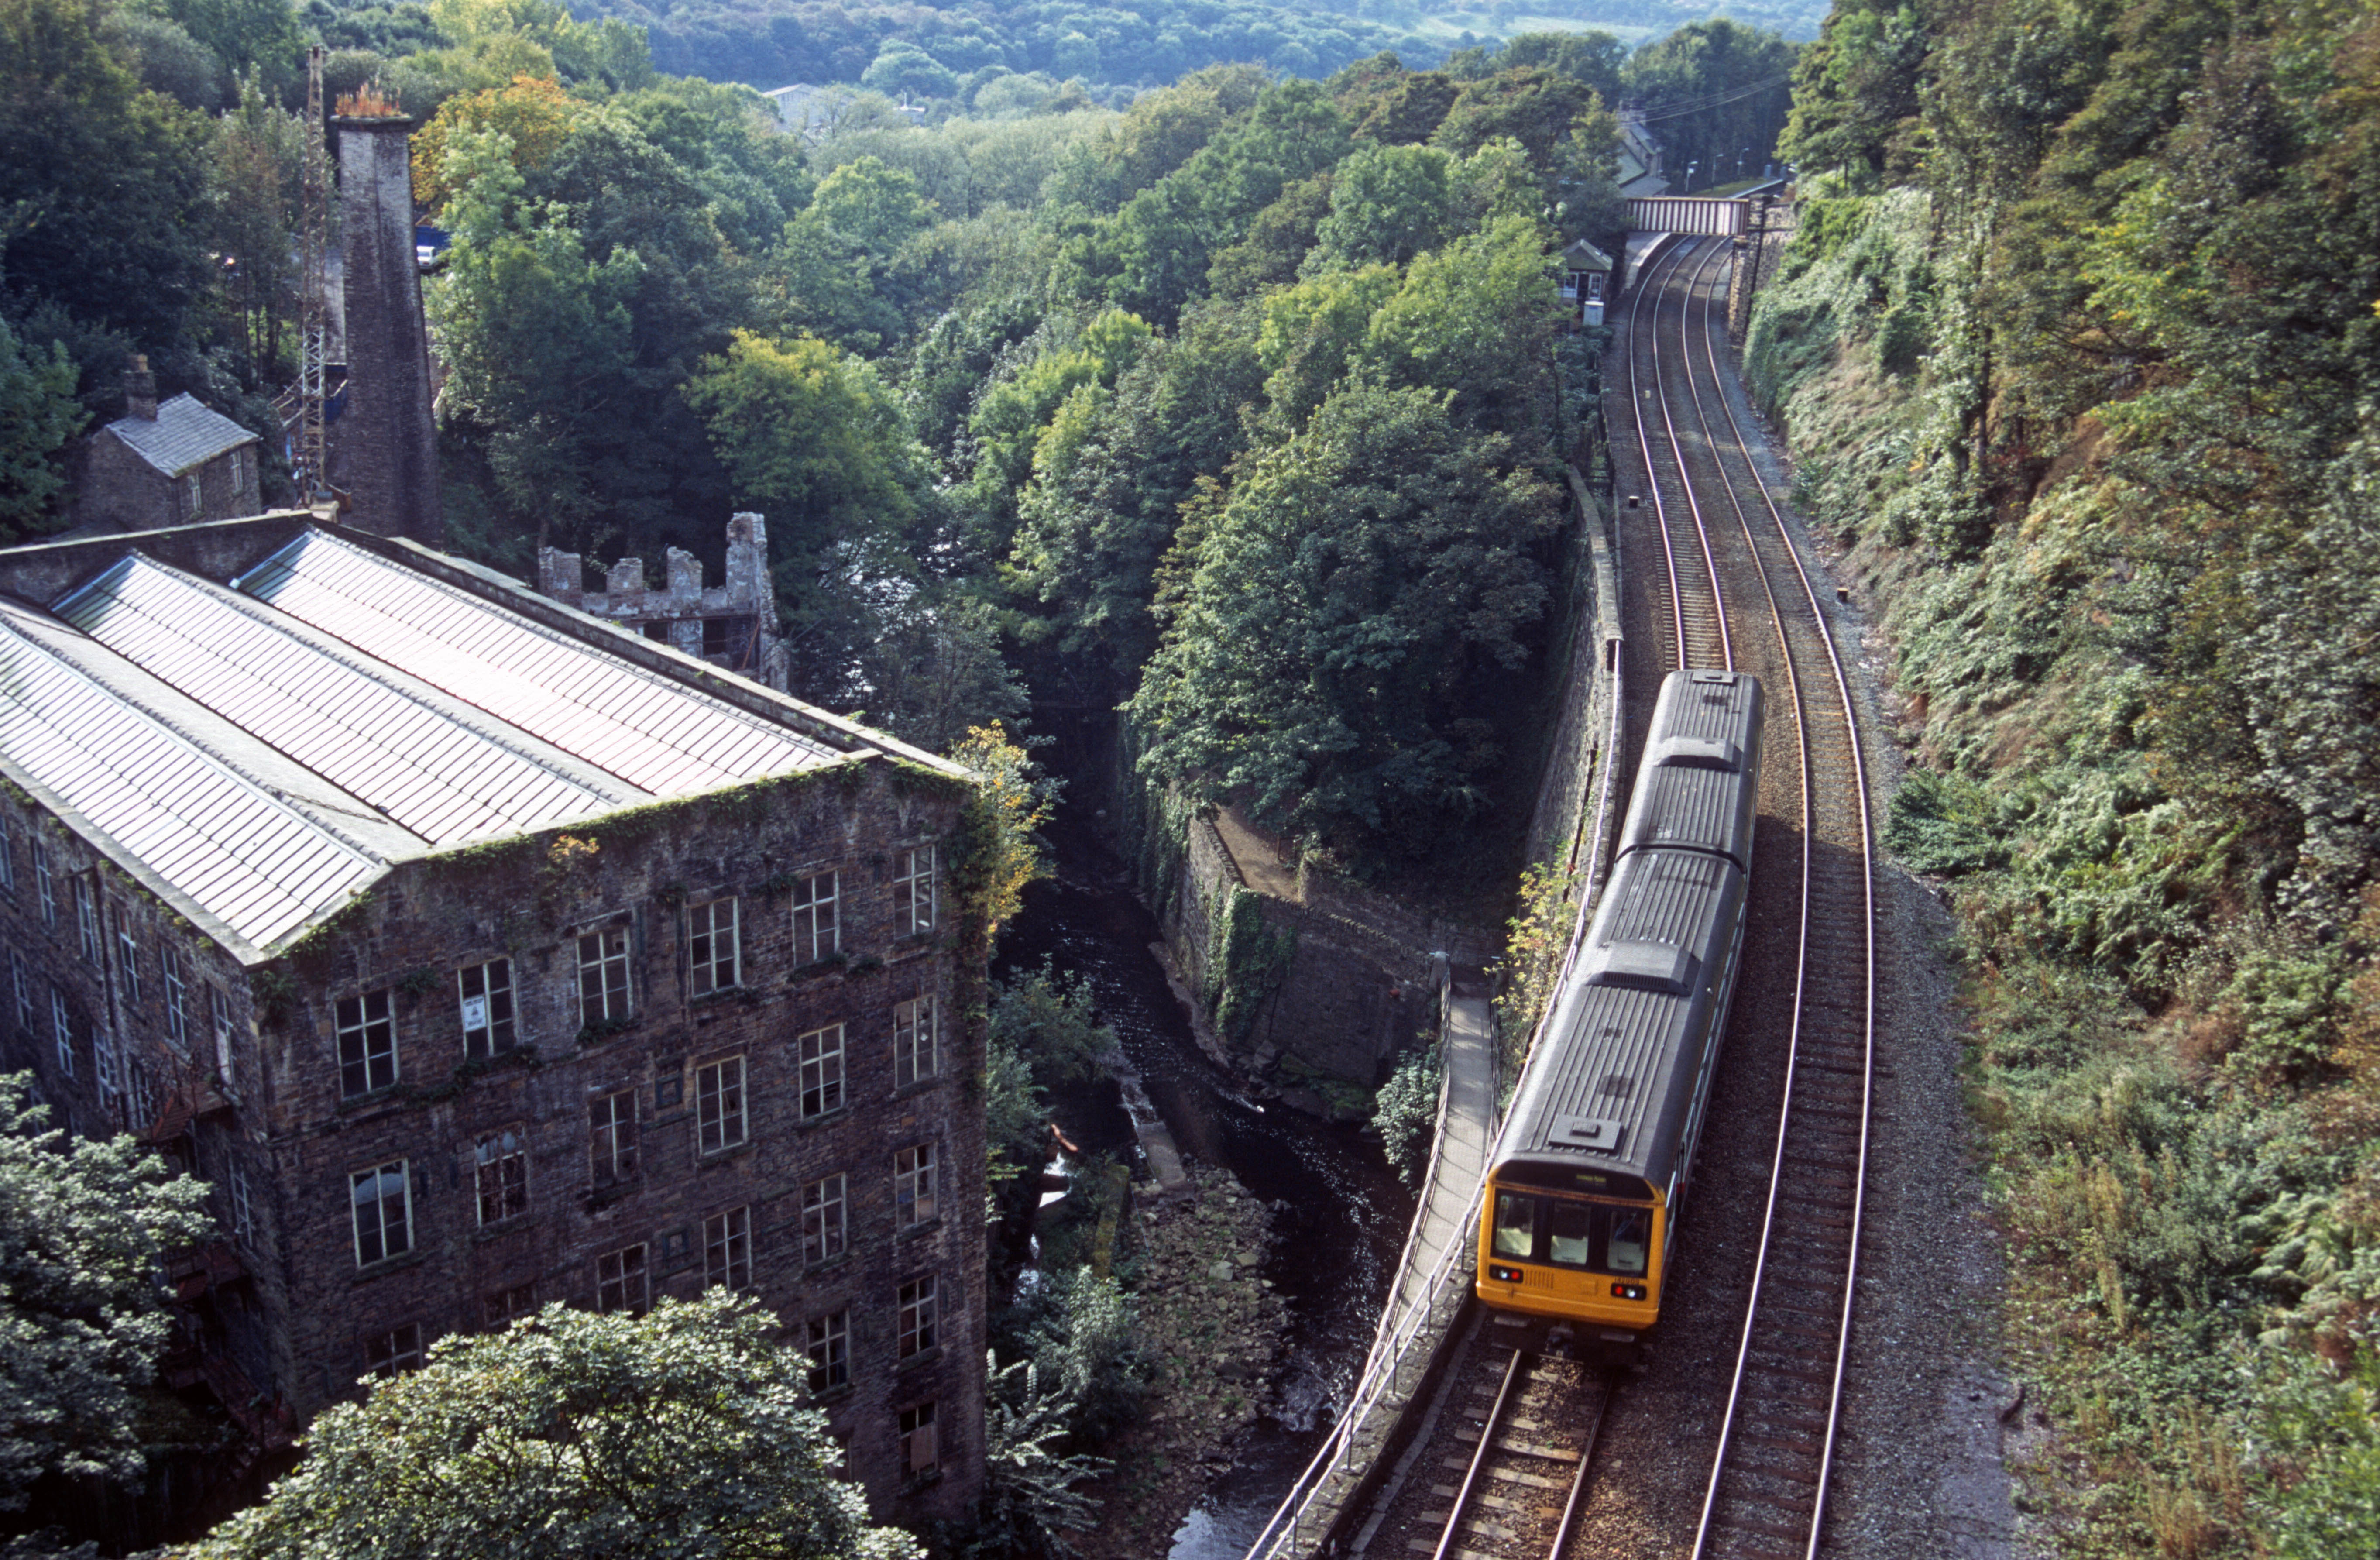 11099. 142003. Sheffield - Manchester service. New Mills. 7.10.02